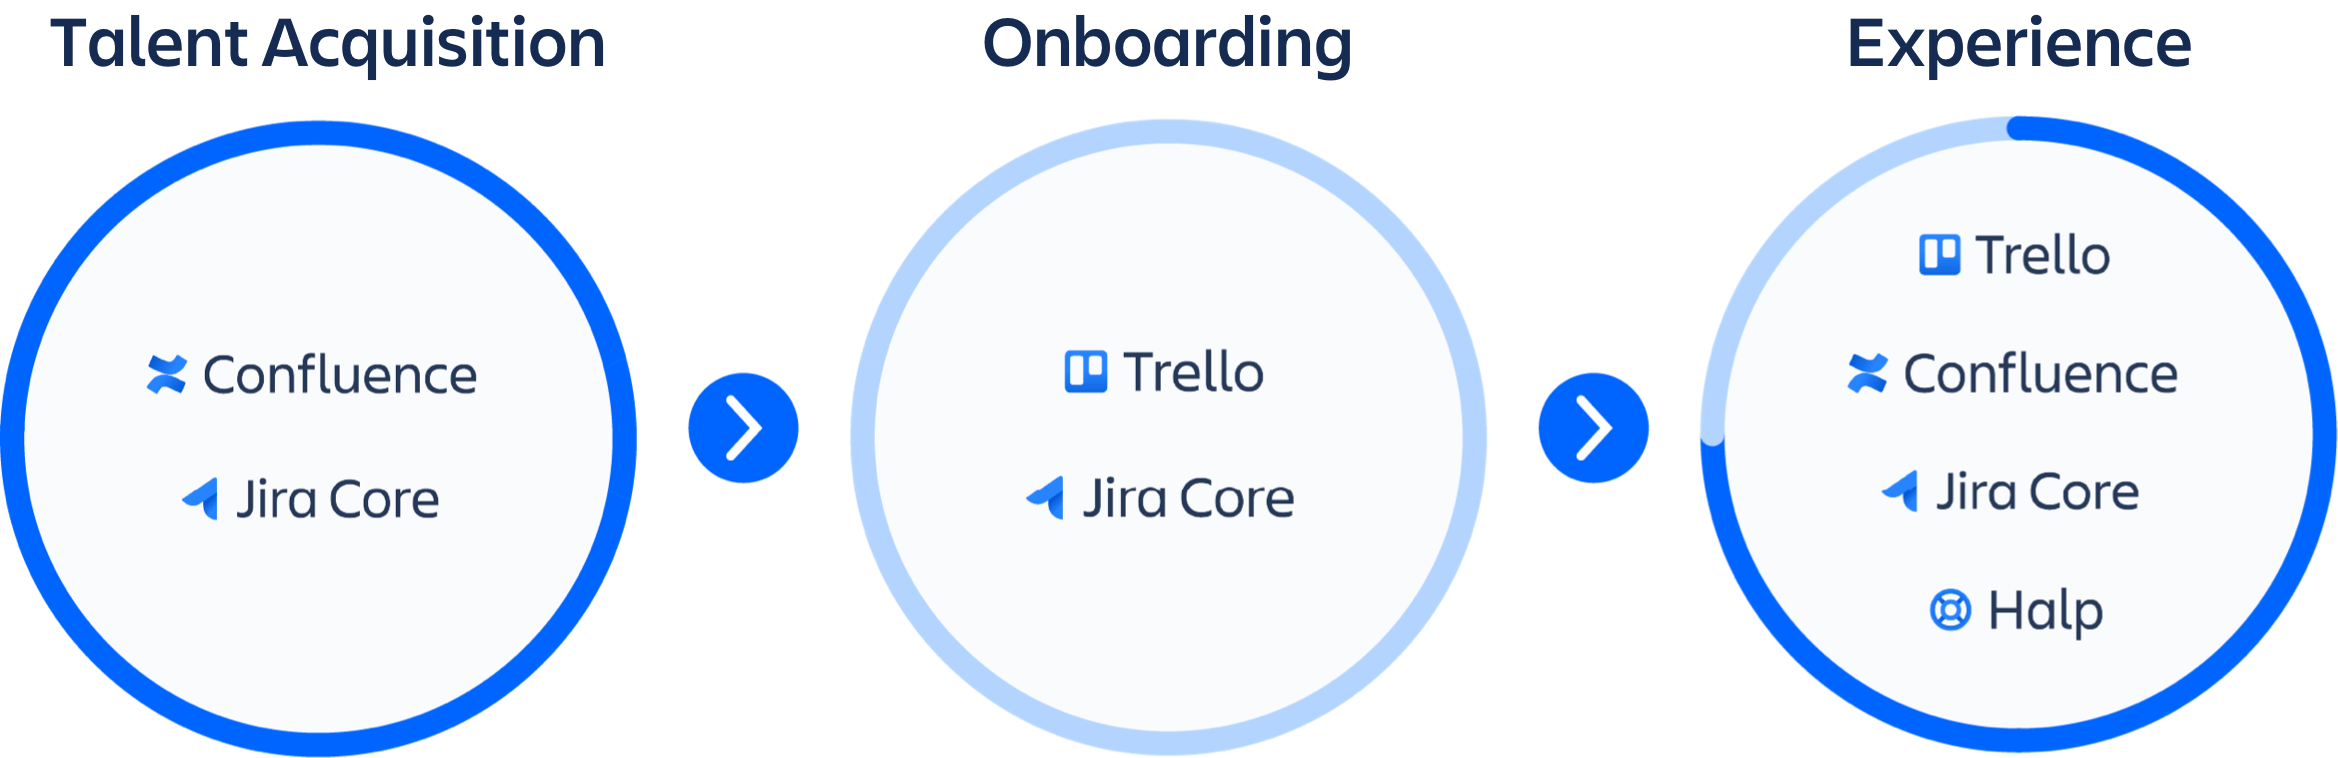 Graphic of Talent Acquisition products: Confluence and Jira Core with Onboarding products: Trello and Jira Core